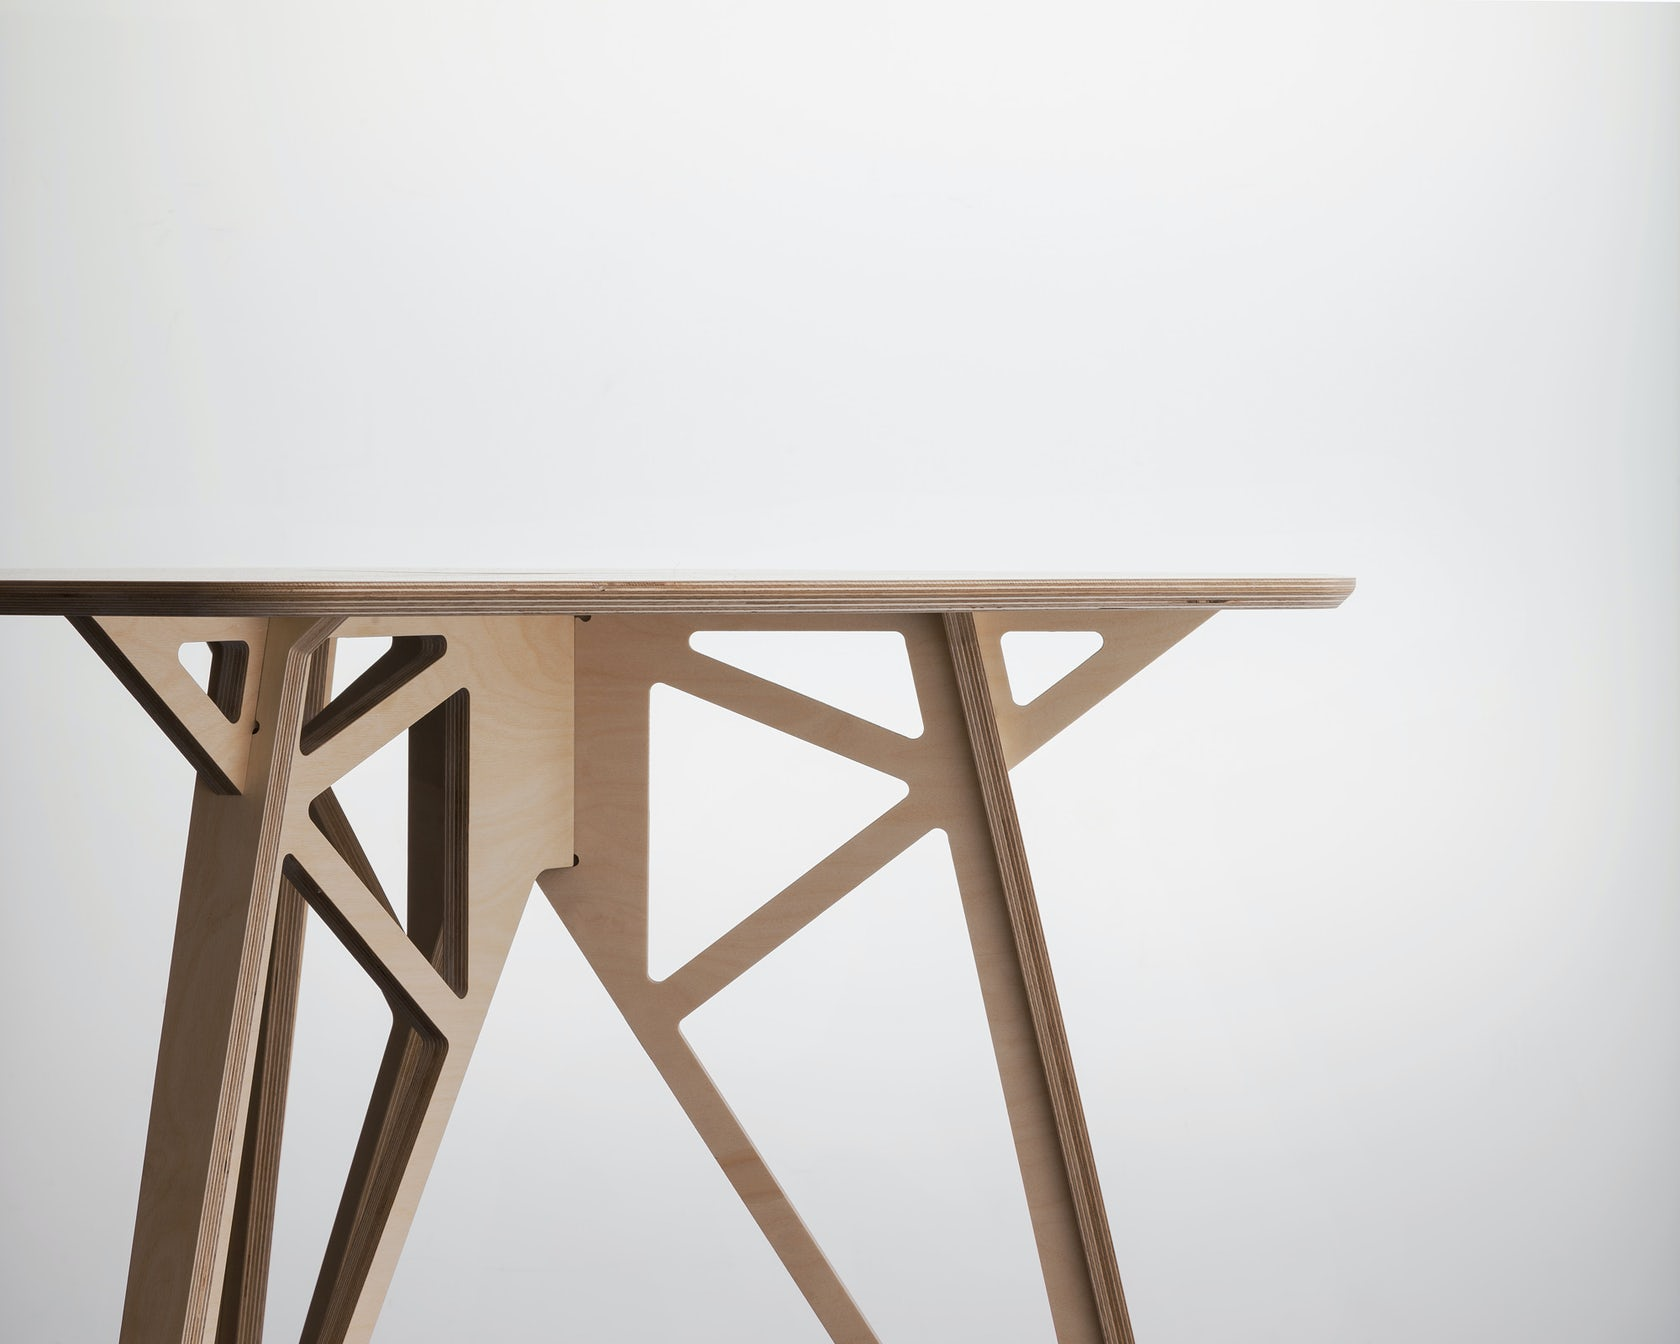 Half-Sheet Table on Architizer